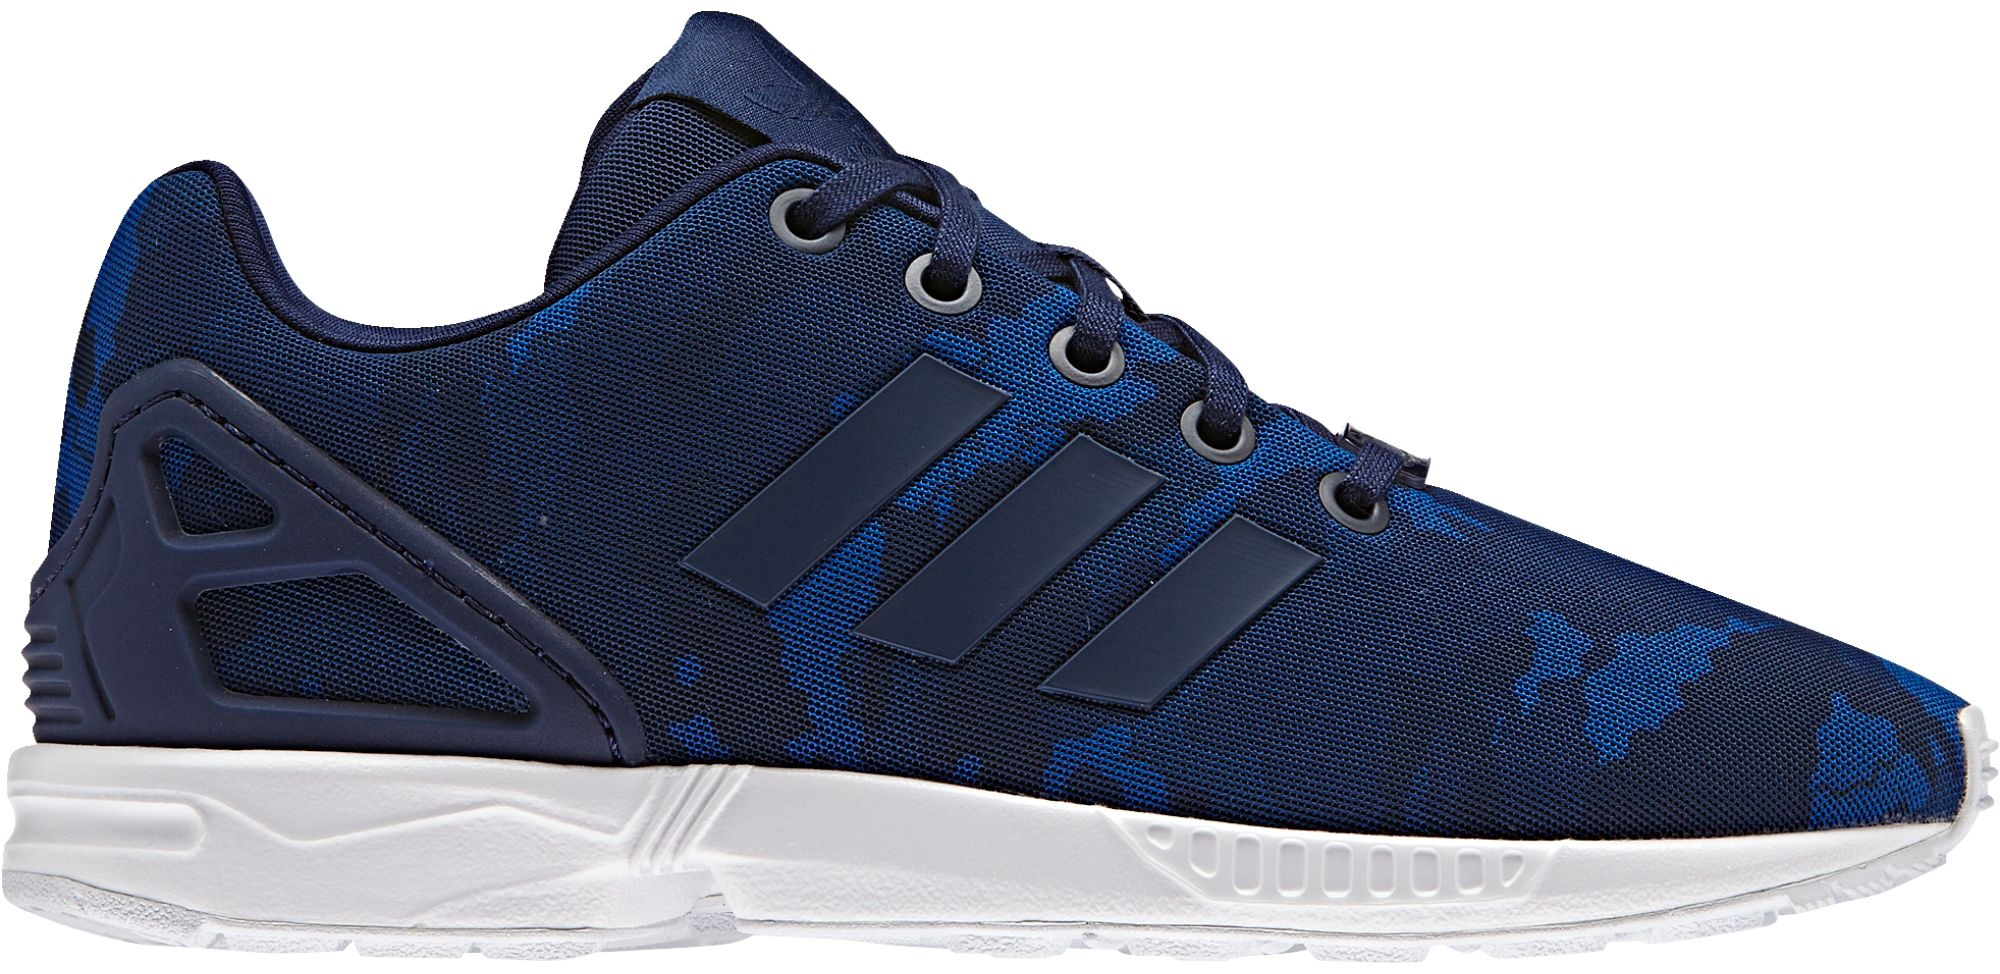 cheap adidas zx 700 trainers methodology meaning in marathi of designation